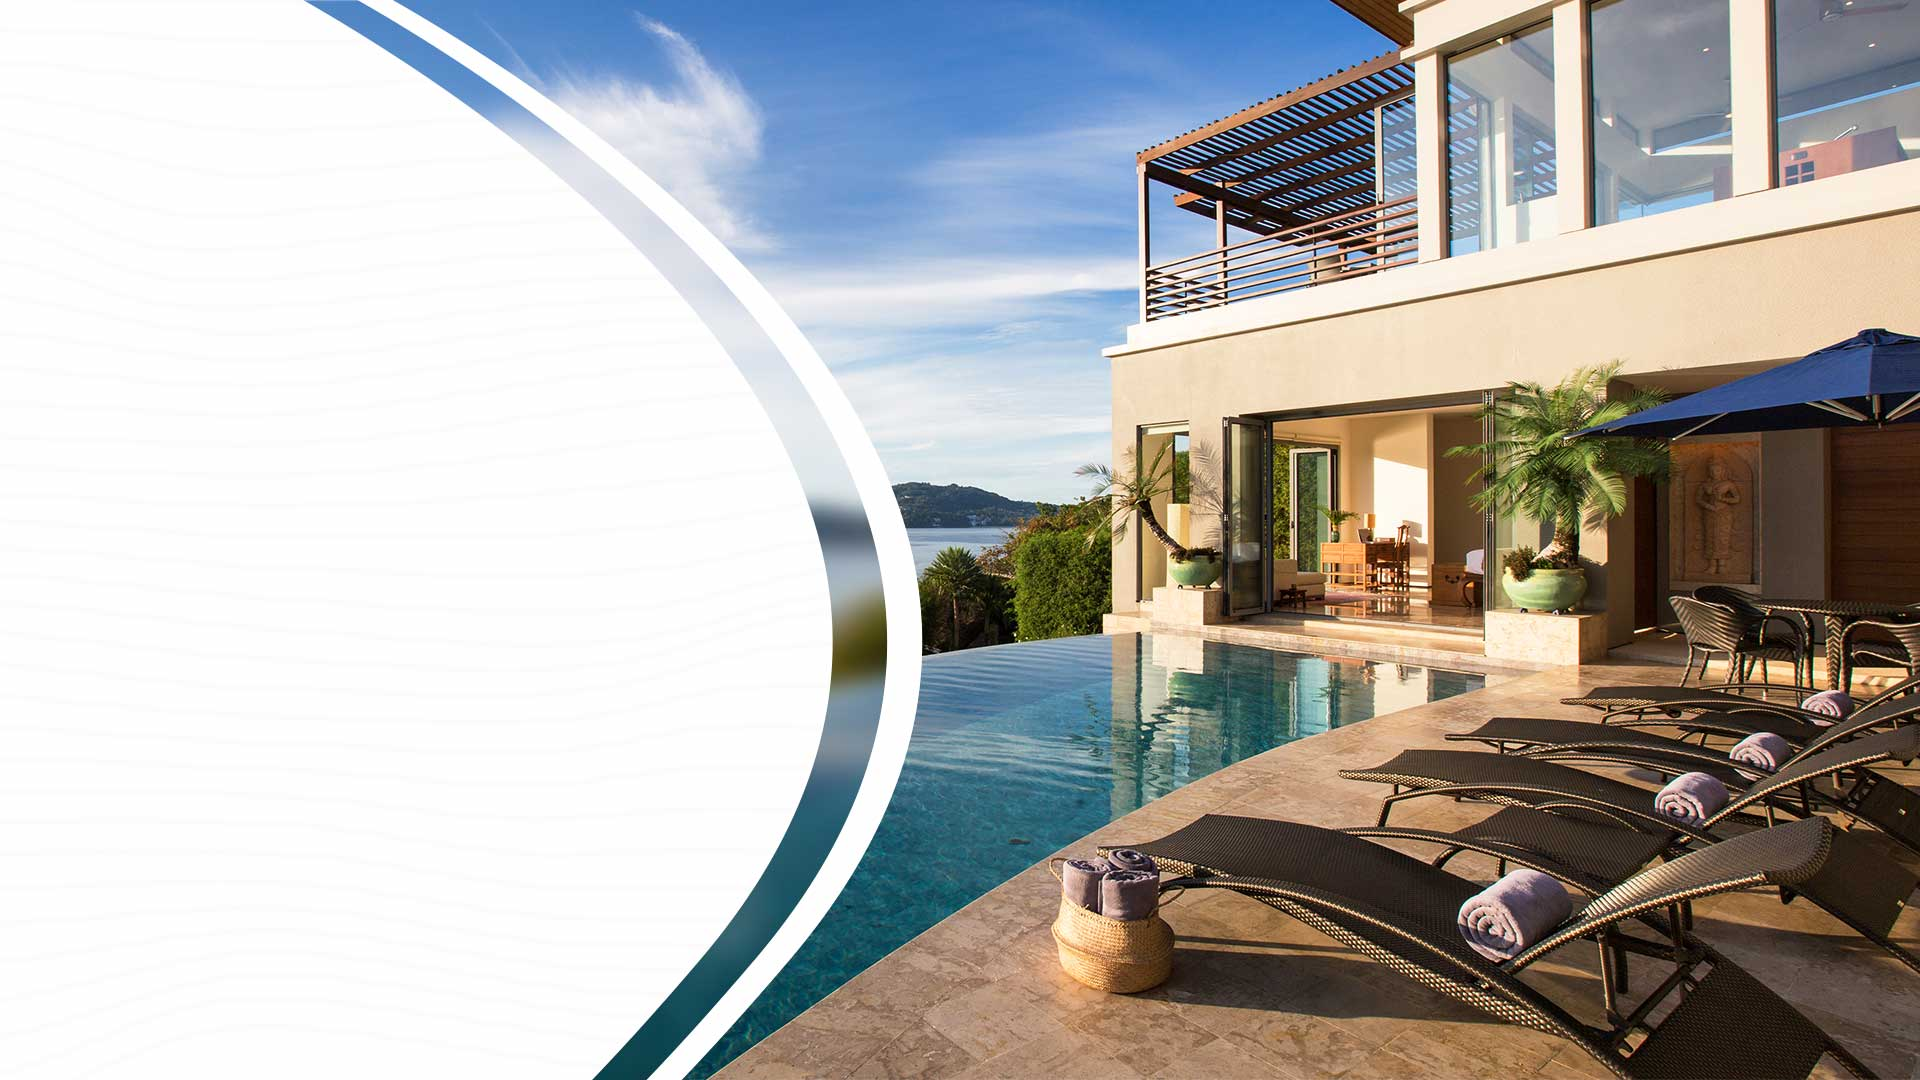 phuket sustainable property